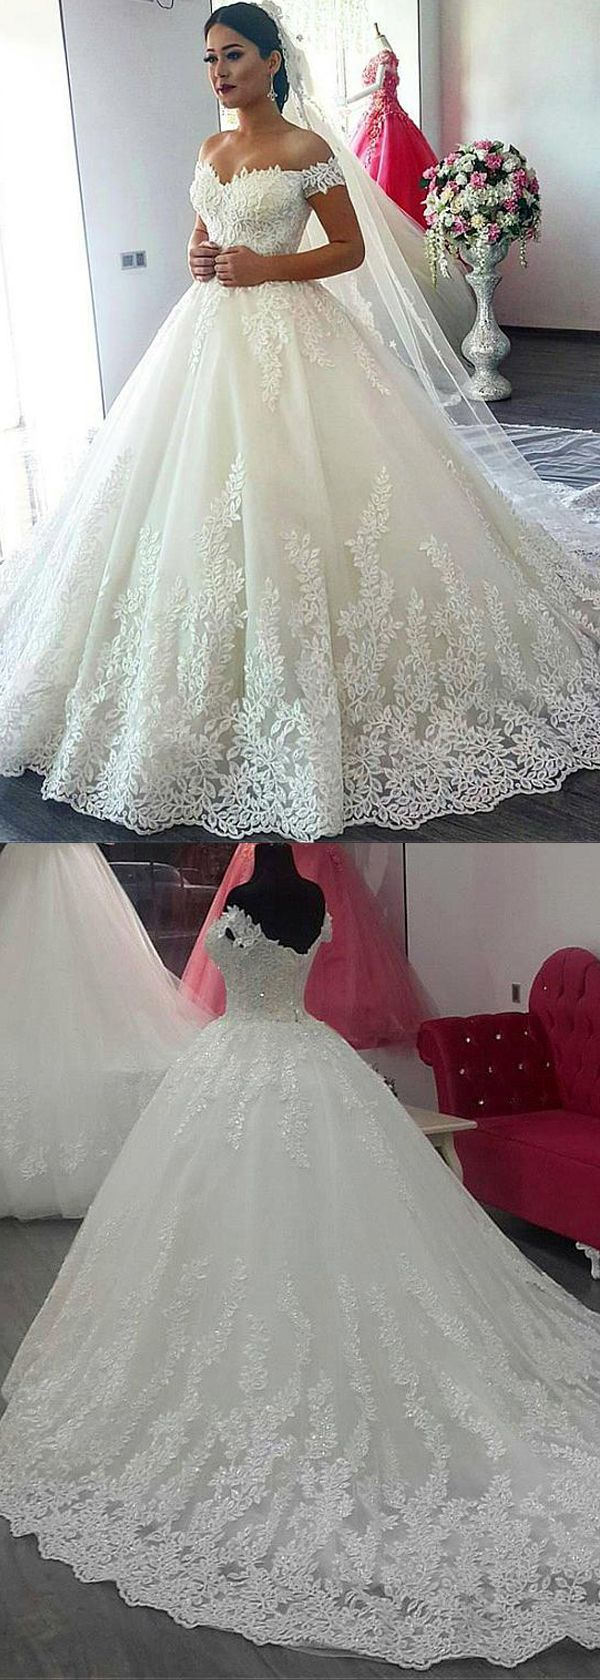 Fascinating Tulle Off-the-shoulder Neckline Ball Gown Wedding Dress With Beaded Lace Appliques #weddingdresses